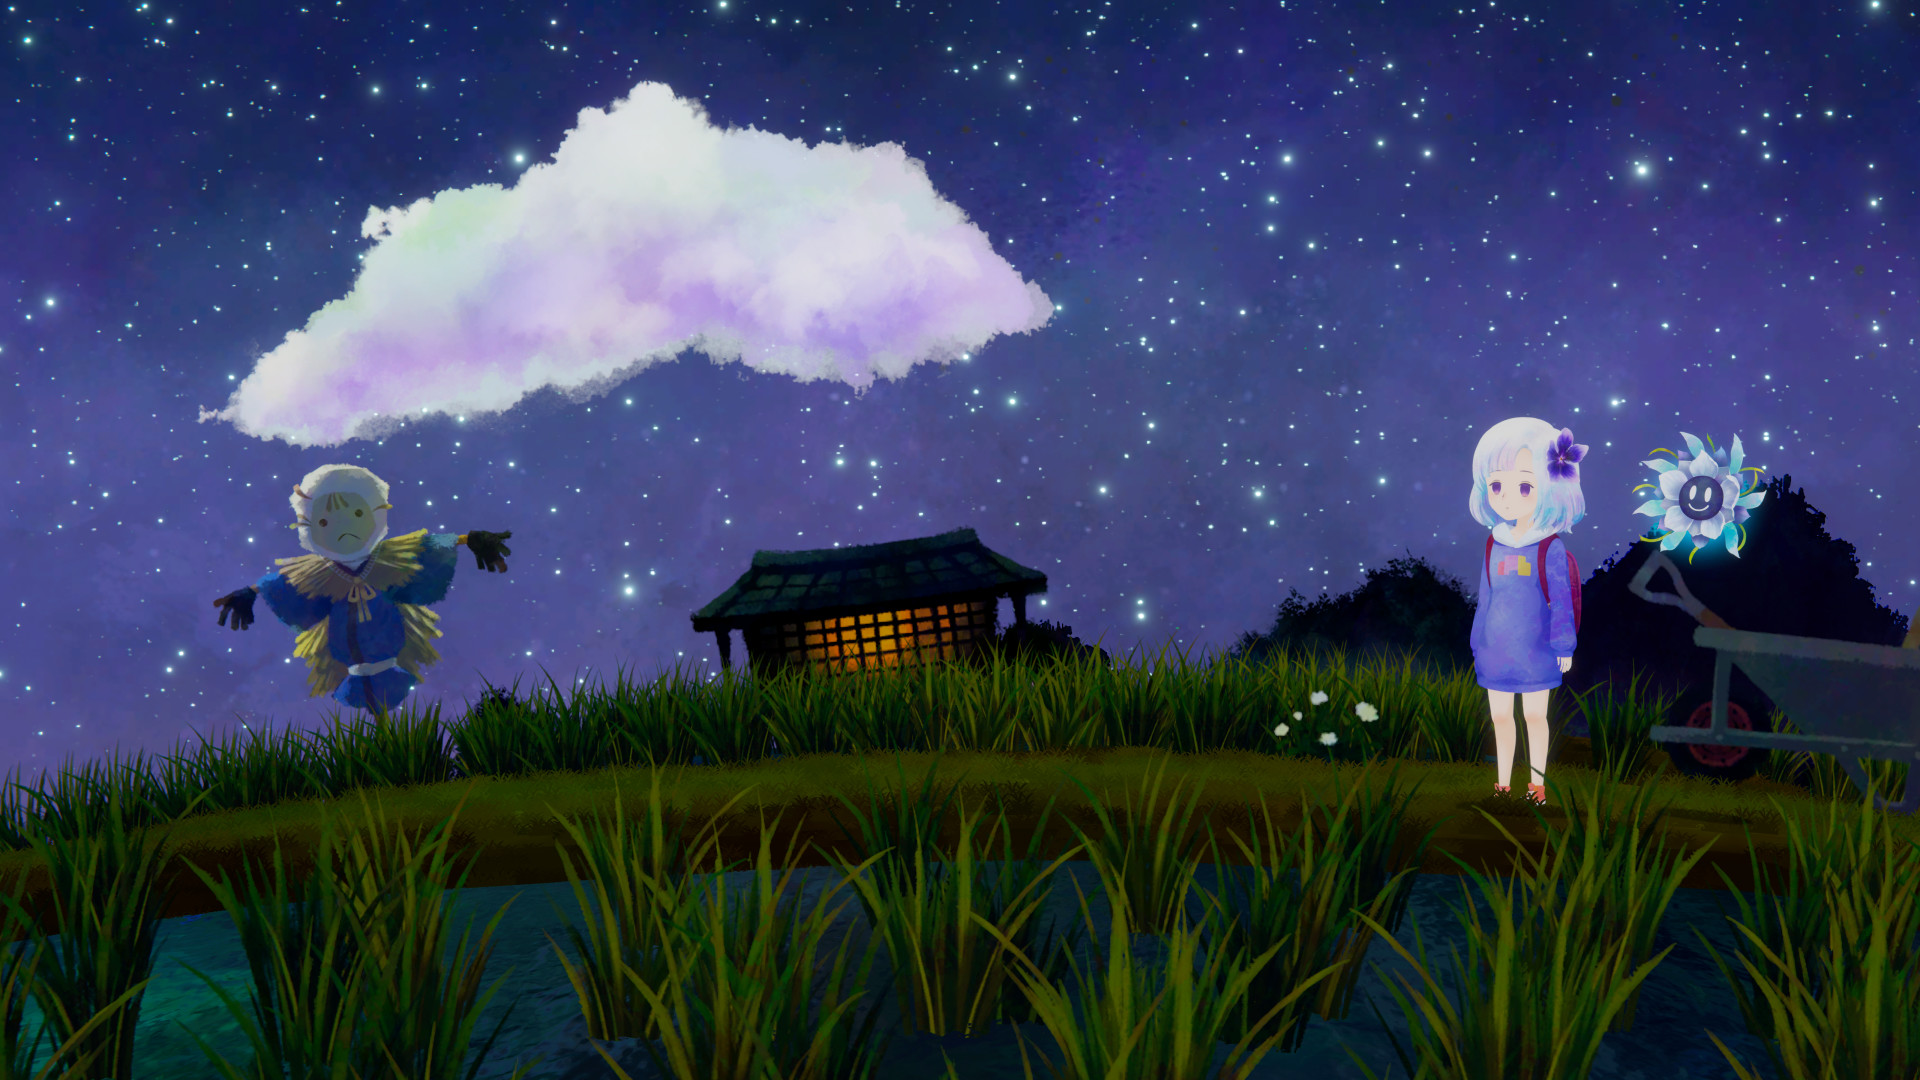 Another Image from Sumire Showcasing it's beautiful artstyle